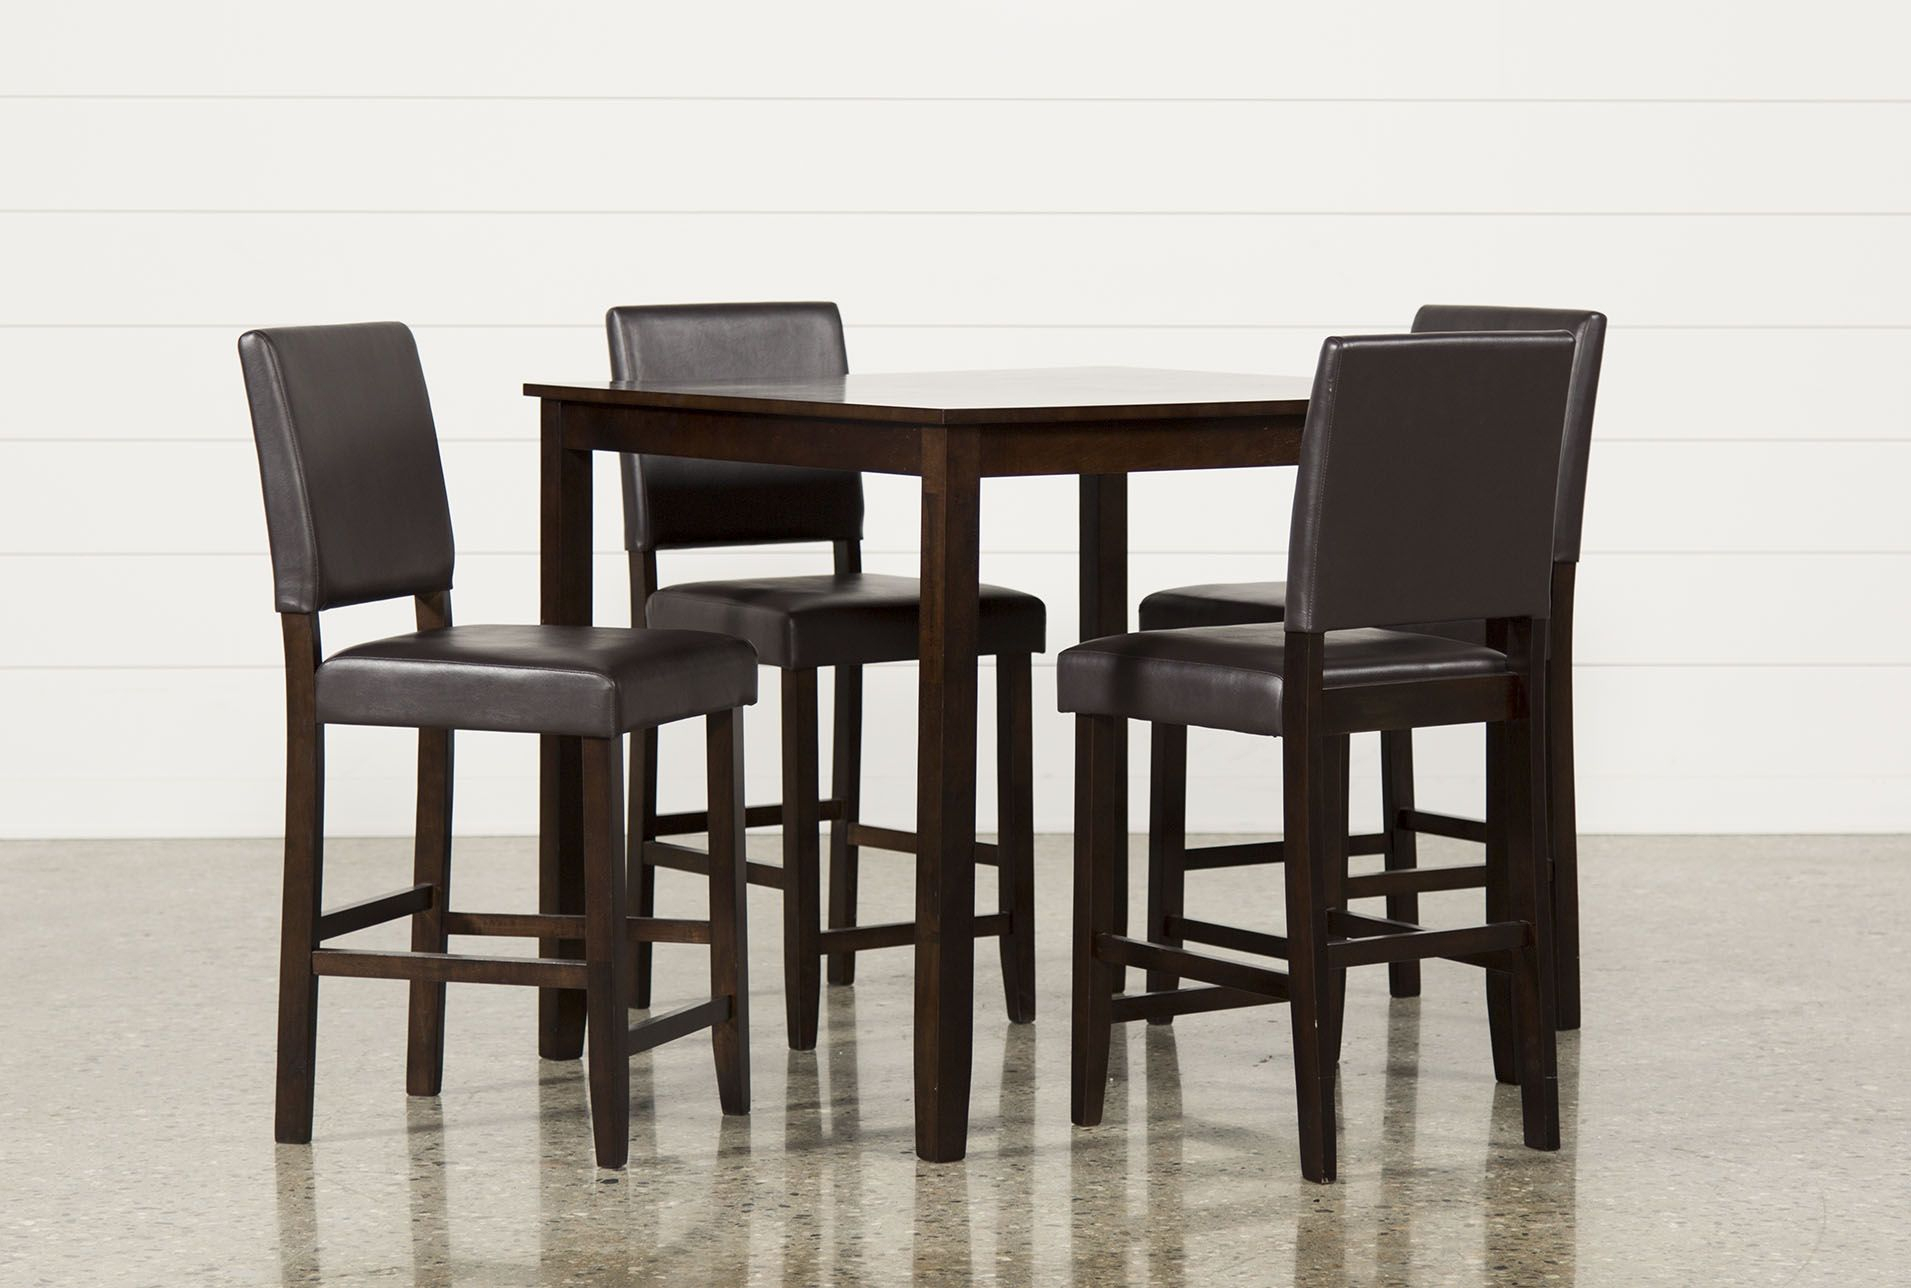 Jarrod 5 Piece Counter Set, Cappucino, Kitchen & Dining Furniture Pertaining To 2018 Jarrod 5 Piece Dining Sets (Image 6 of 20)